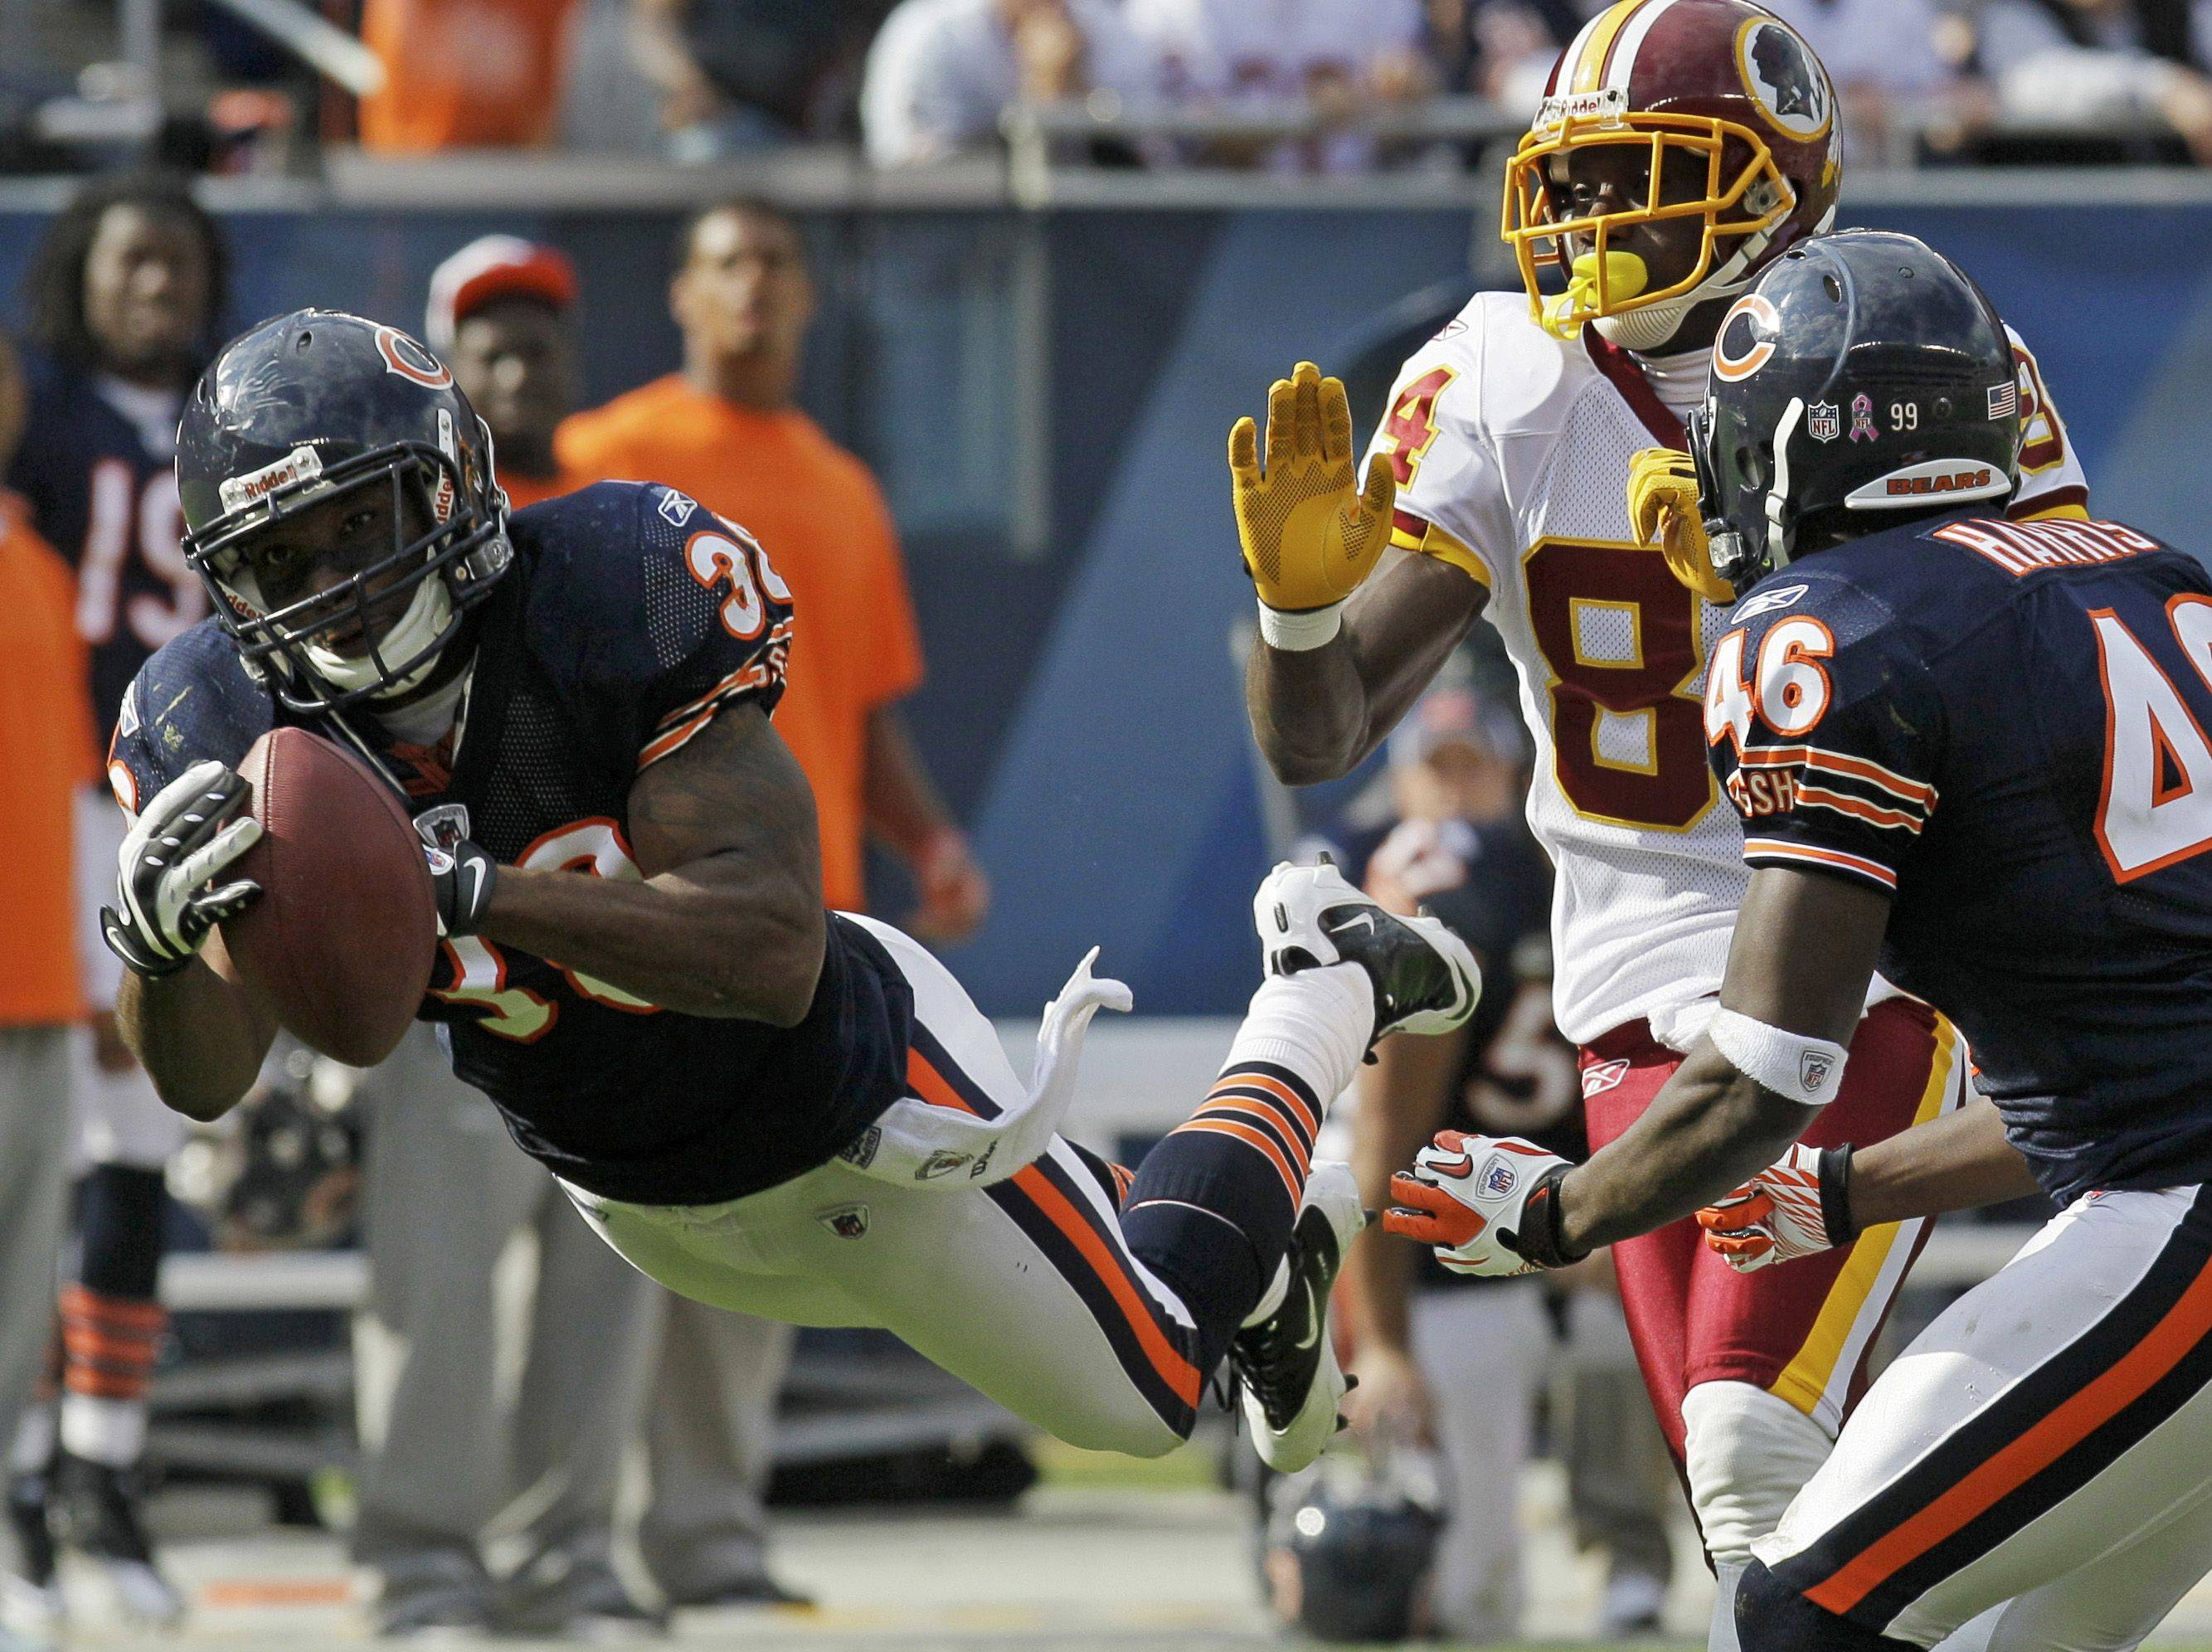 Chicago Bears safety Danieal Manning, left, intercepts a pass intended for Washington Redskins wide receiver Joey Galloway in the second half. Watching the play is Bears safety Chris Harris.